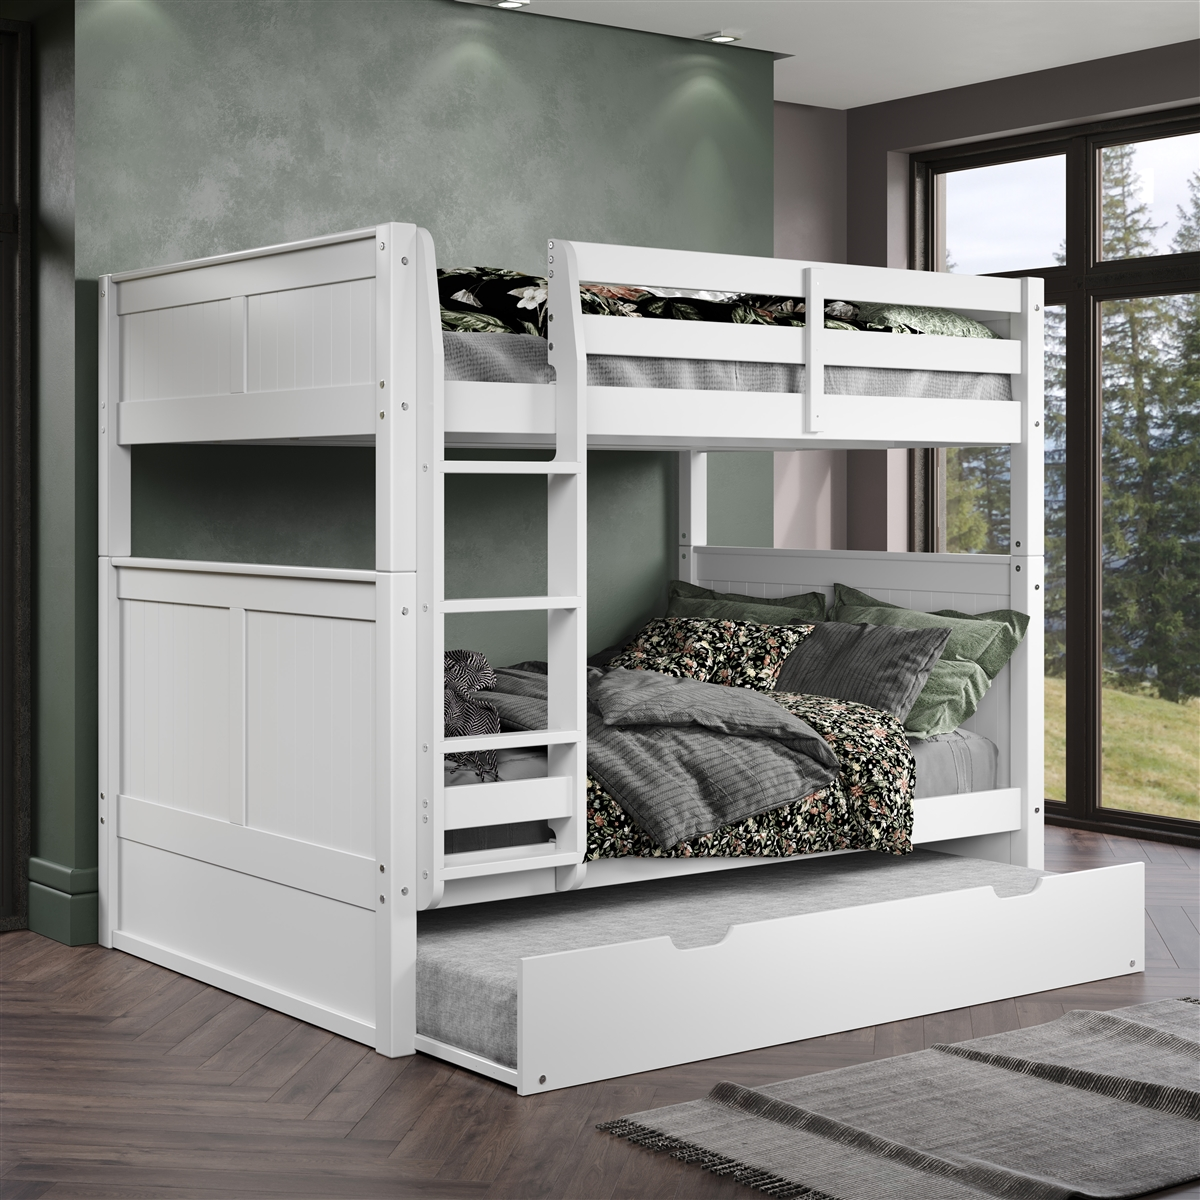 com and xl queen bed designs trundle weber full weberwooddesigns twin with wood by made bunk hand custommade